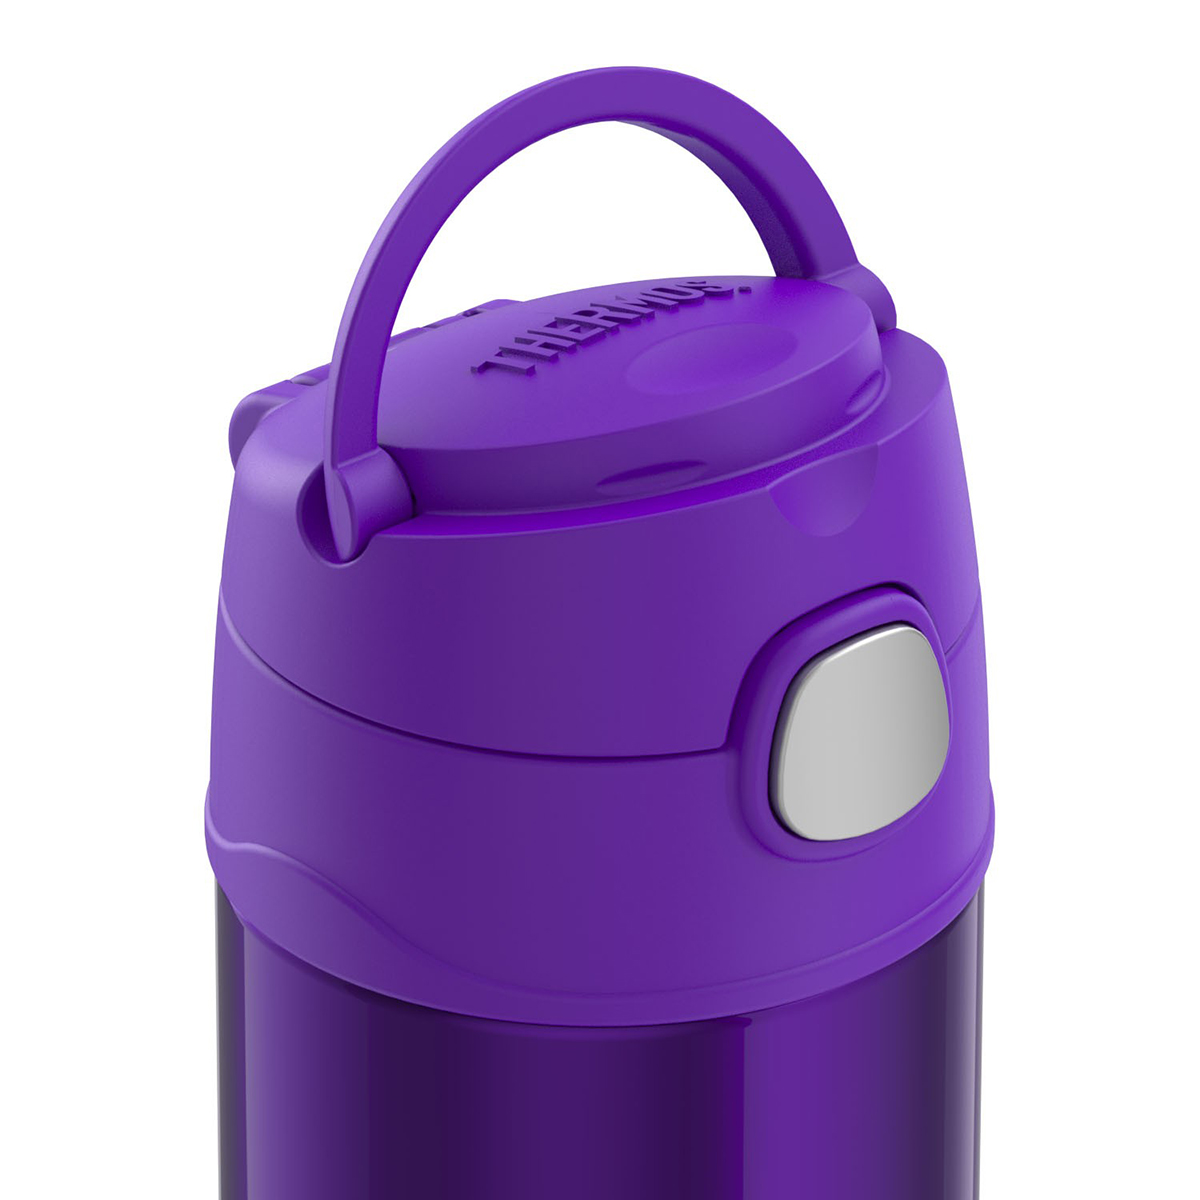 Verre Thermos Thermos 12 Oz Kid 39s Funtainer Vacuum Insulated Stainless